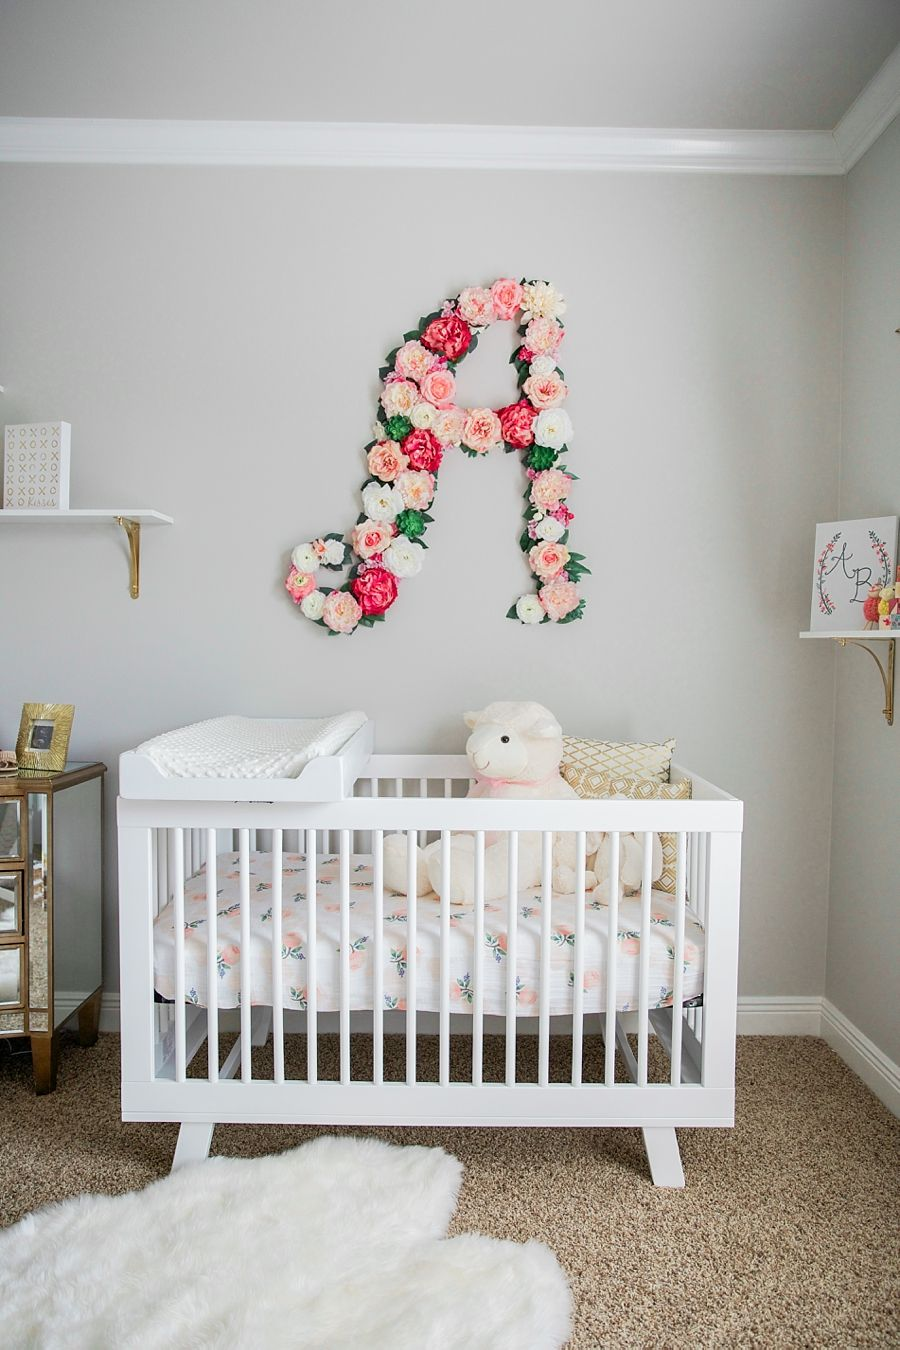 Baby Room Accessories: Baby Girl Nursery With Floral Wall